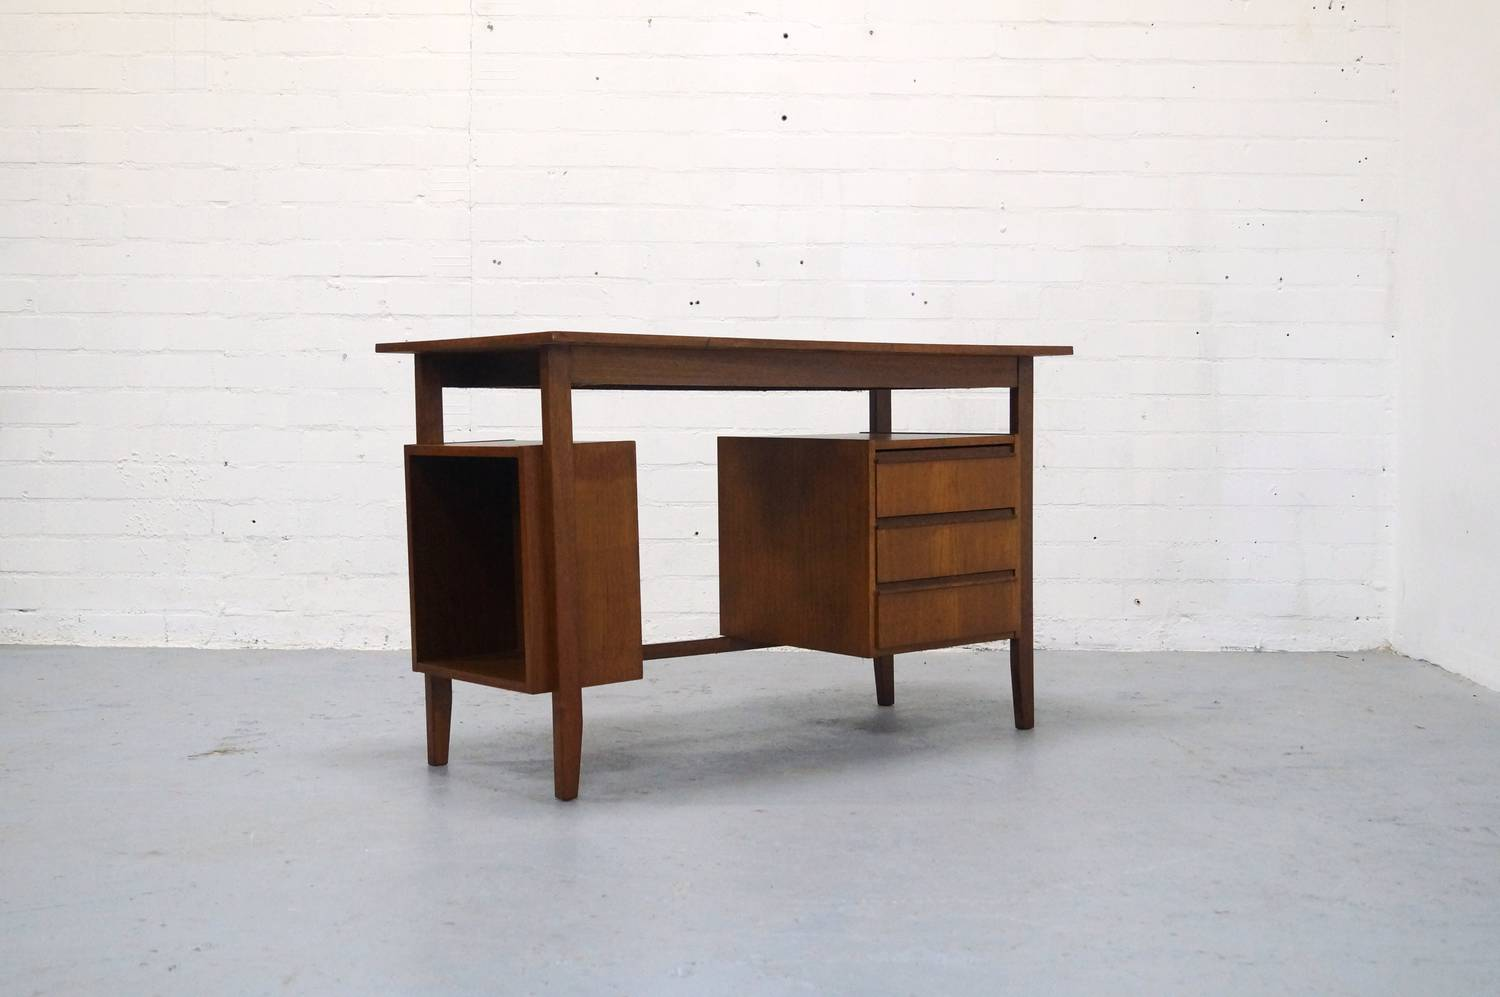 nice mid century home design 7 vintage teak bureau jaren 50 60 design mid century retro desk. Black Bedroom Furniture Sets. Home Design Ideas